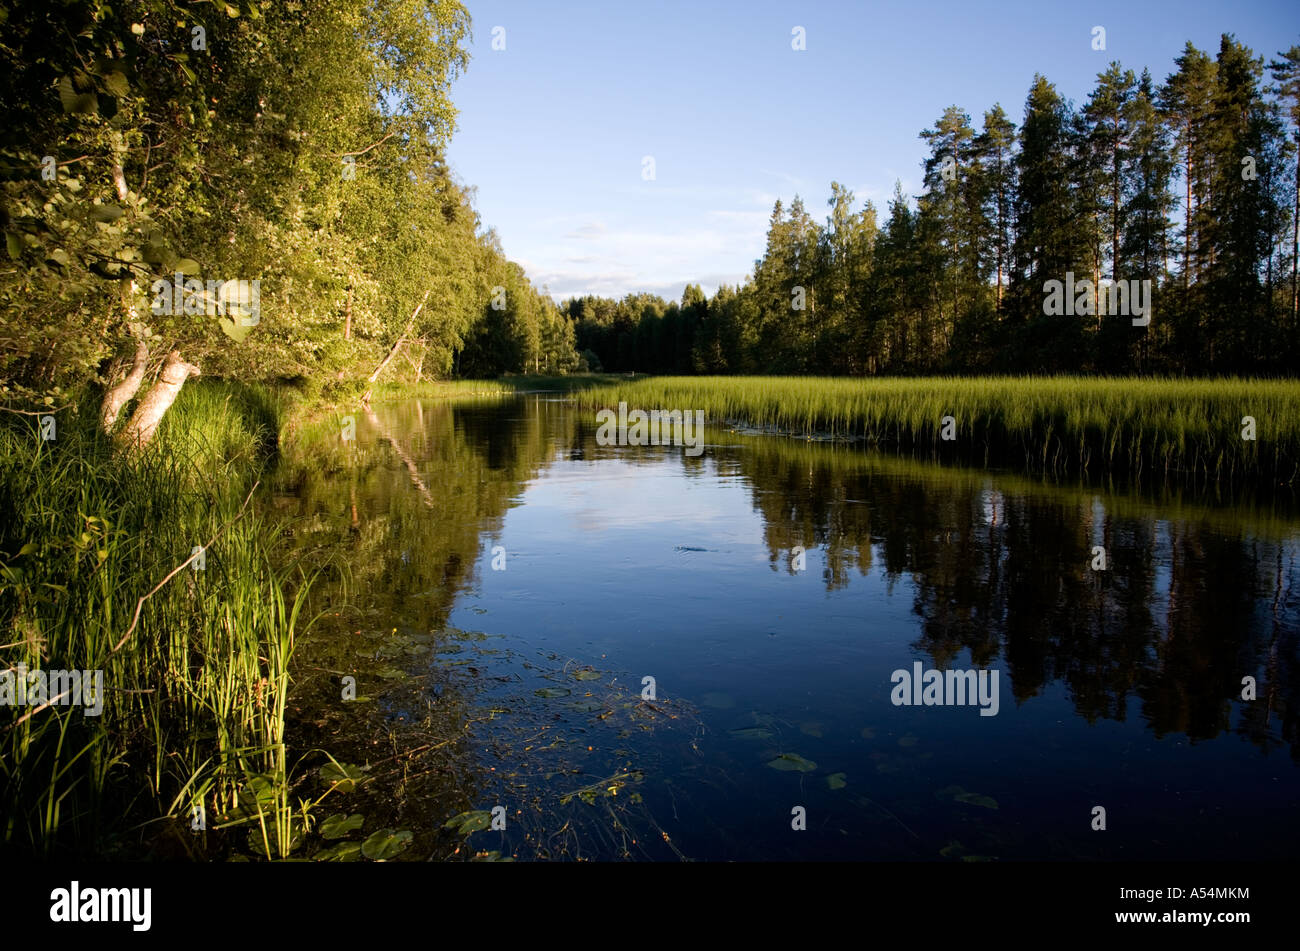 View of a small slow flowing river at evening light , Finland - Stock Image